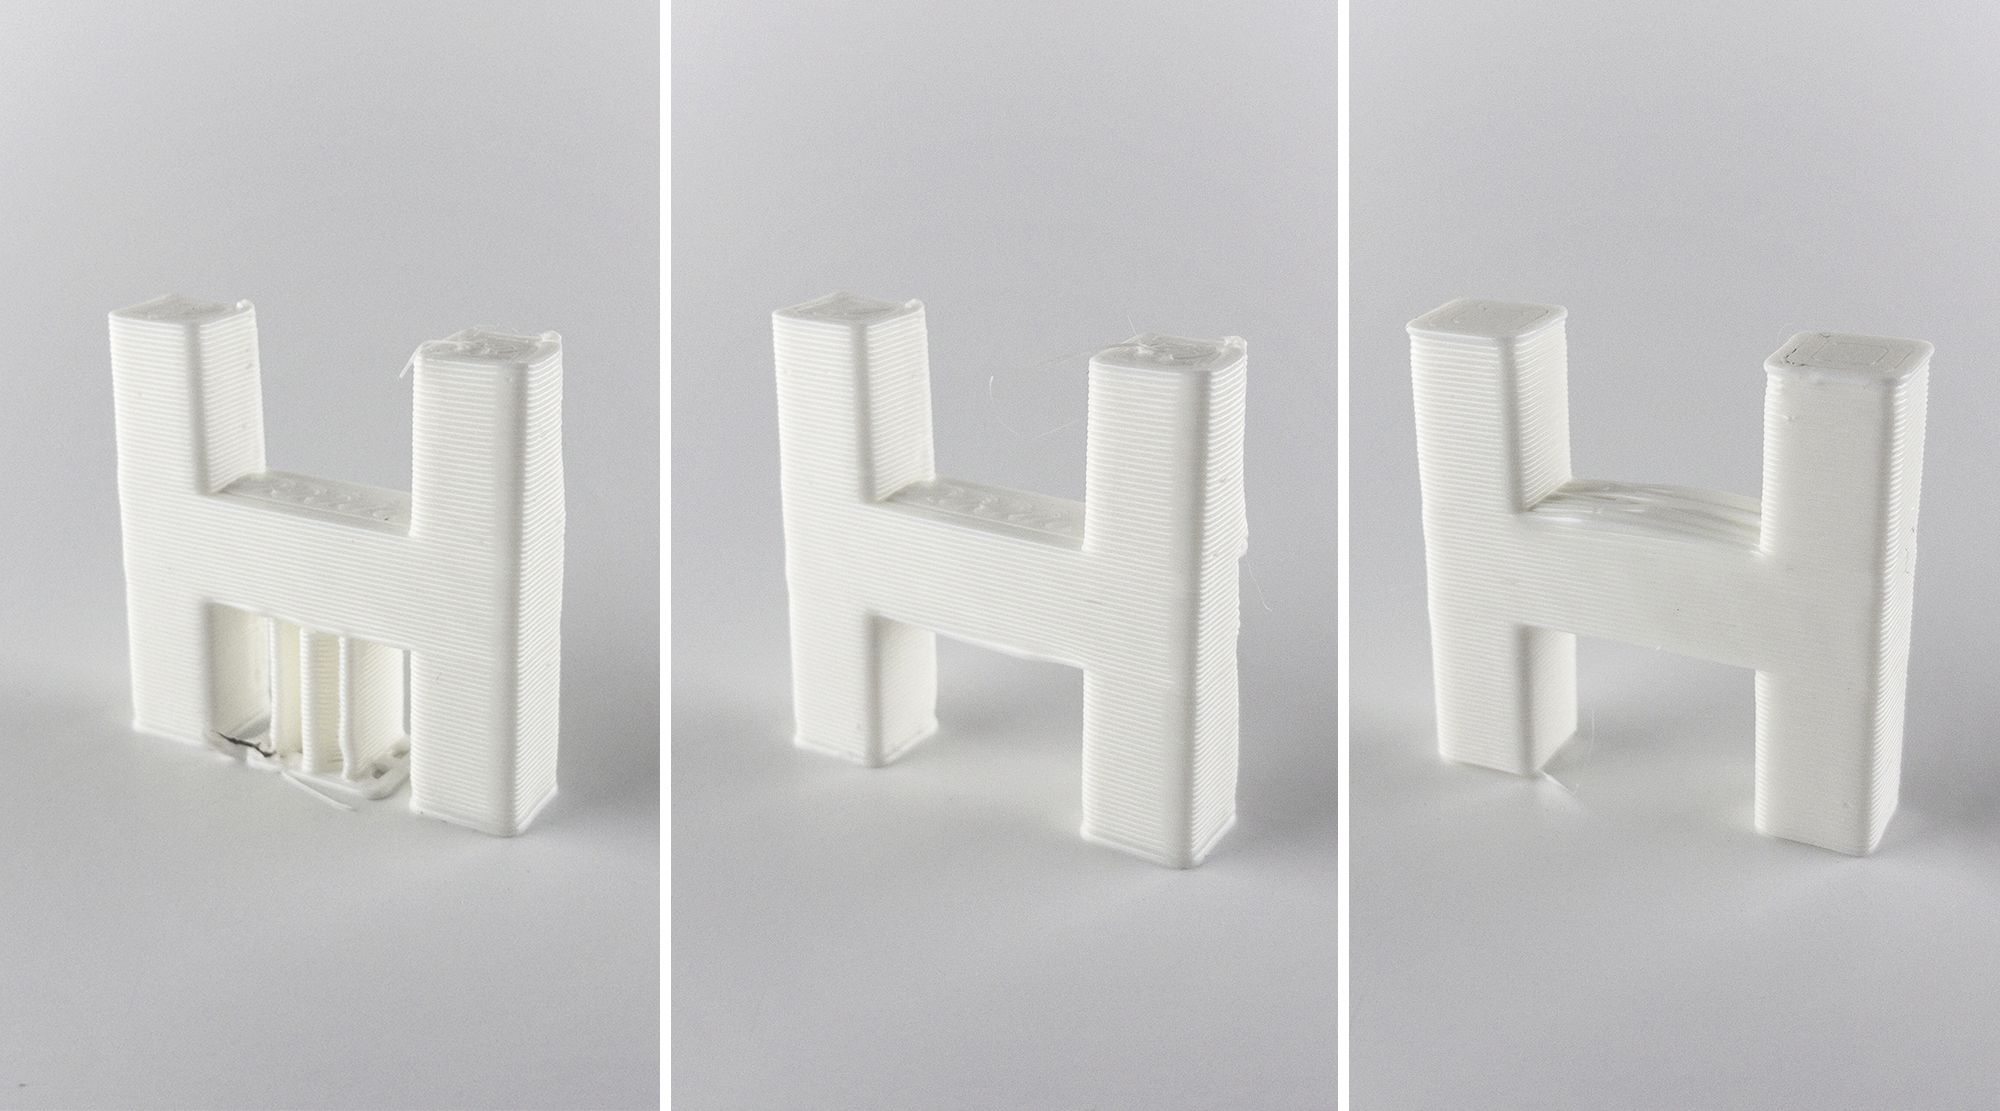 3D printed H shapes with and without supports